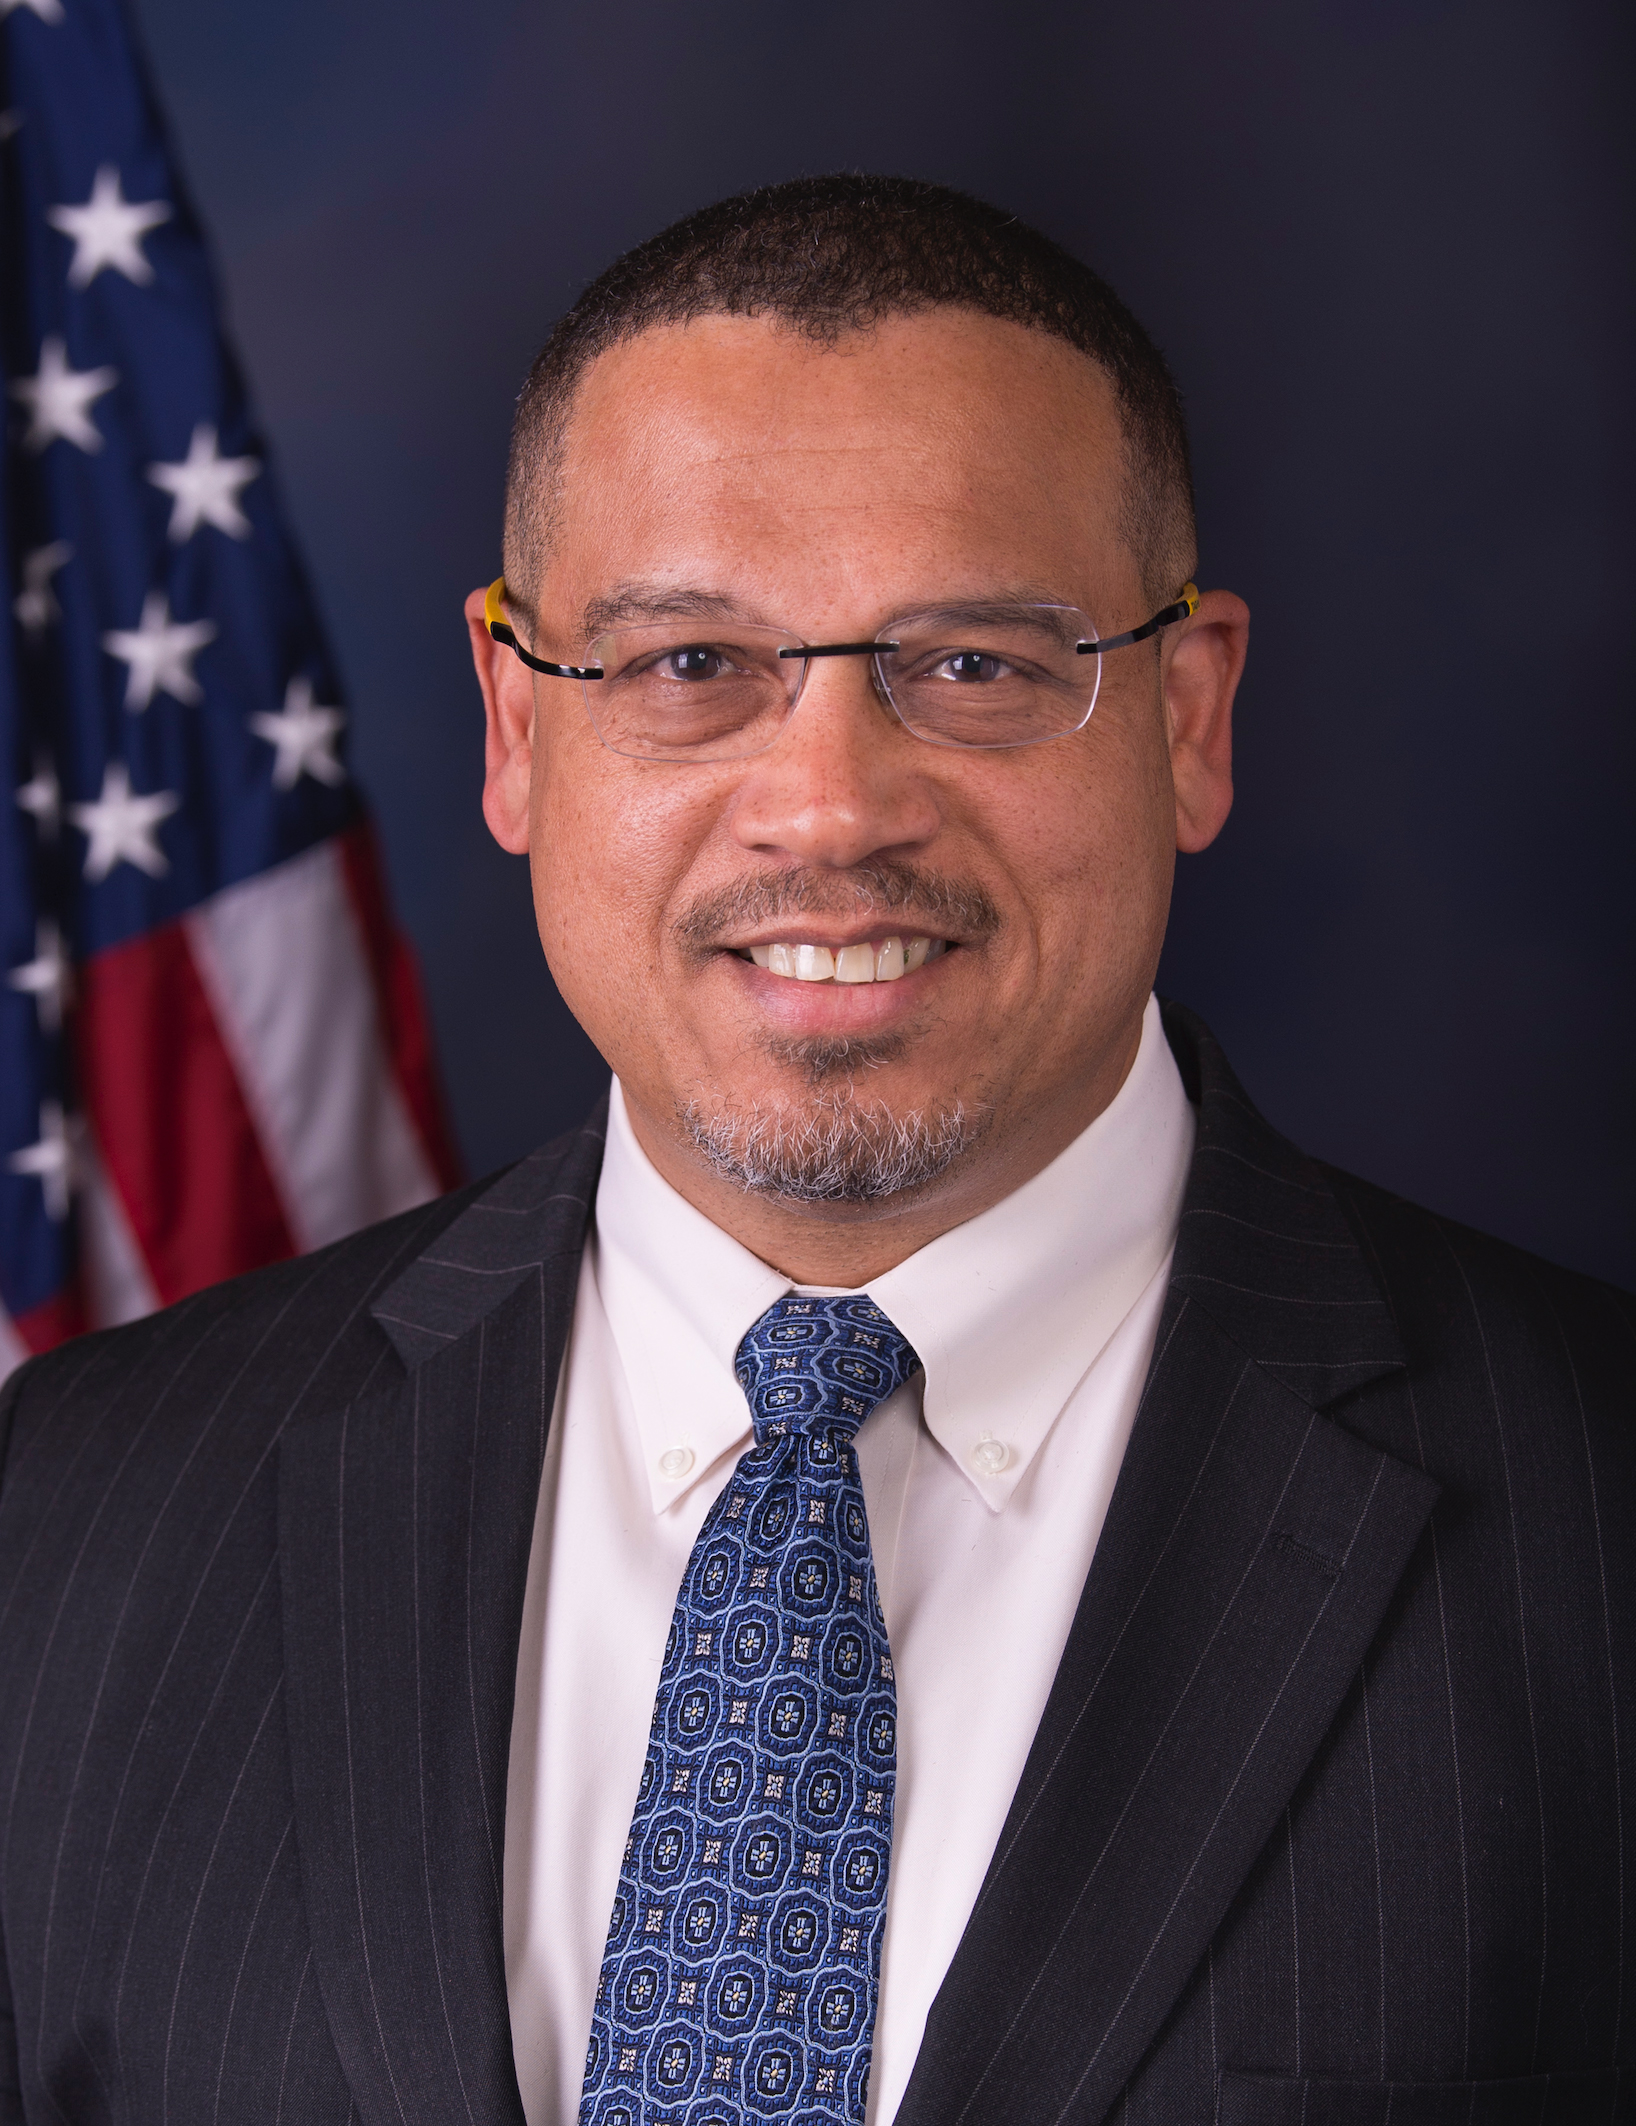 U.S. Rep Keith Ellison is first Muslim elected to the U.S. Congress placeholder image.